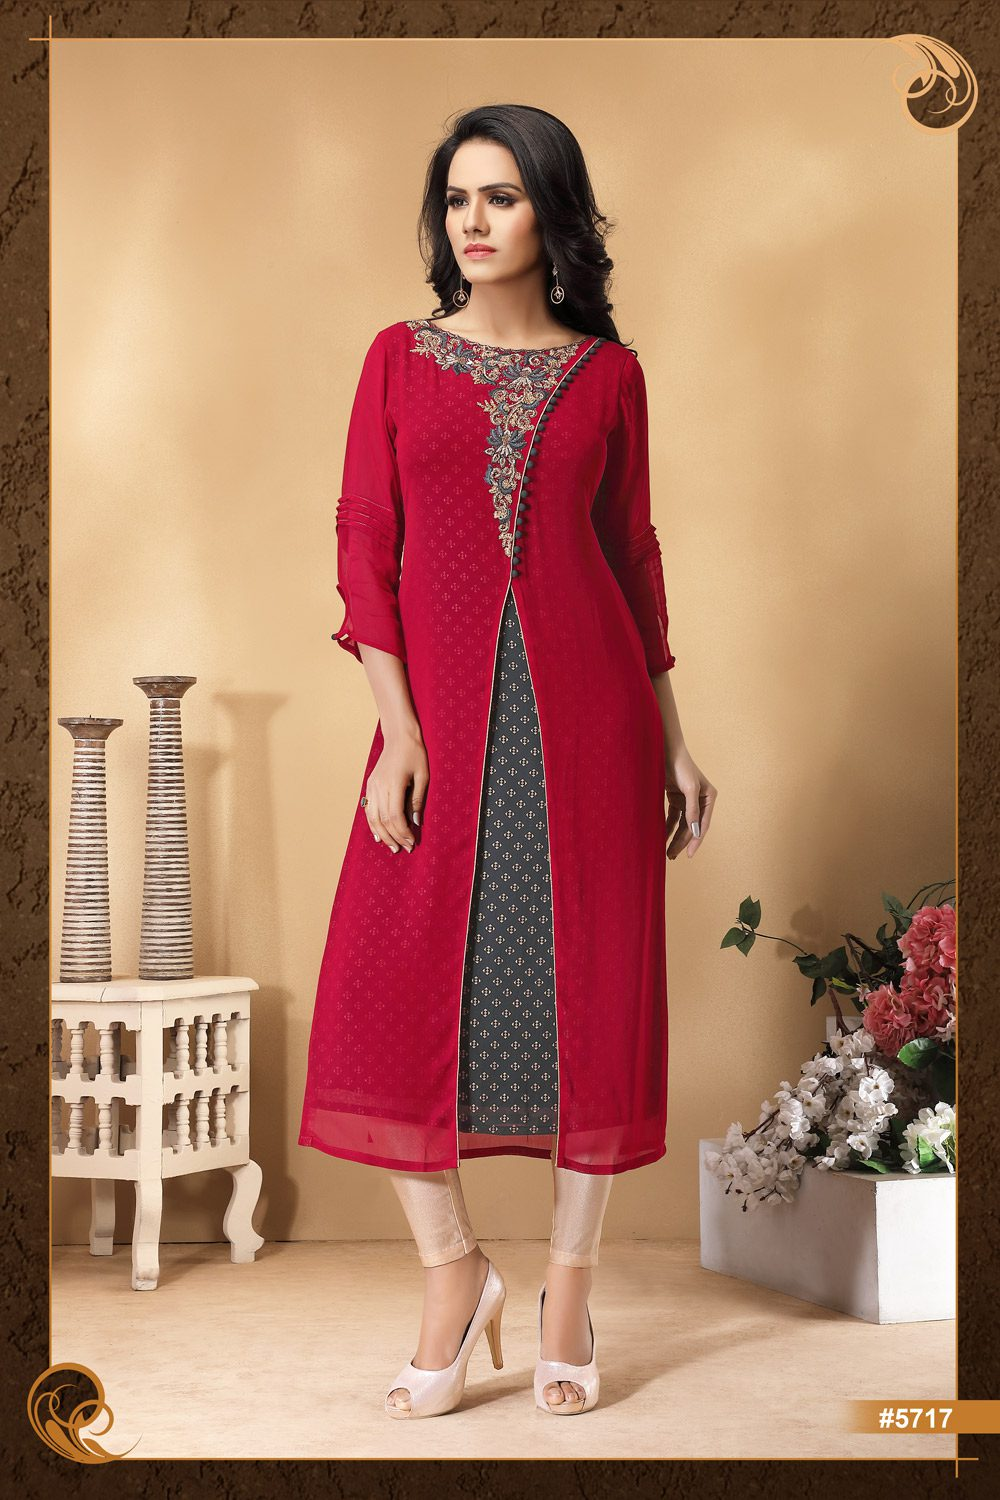 2 toned layered Kurti with hand embroidery